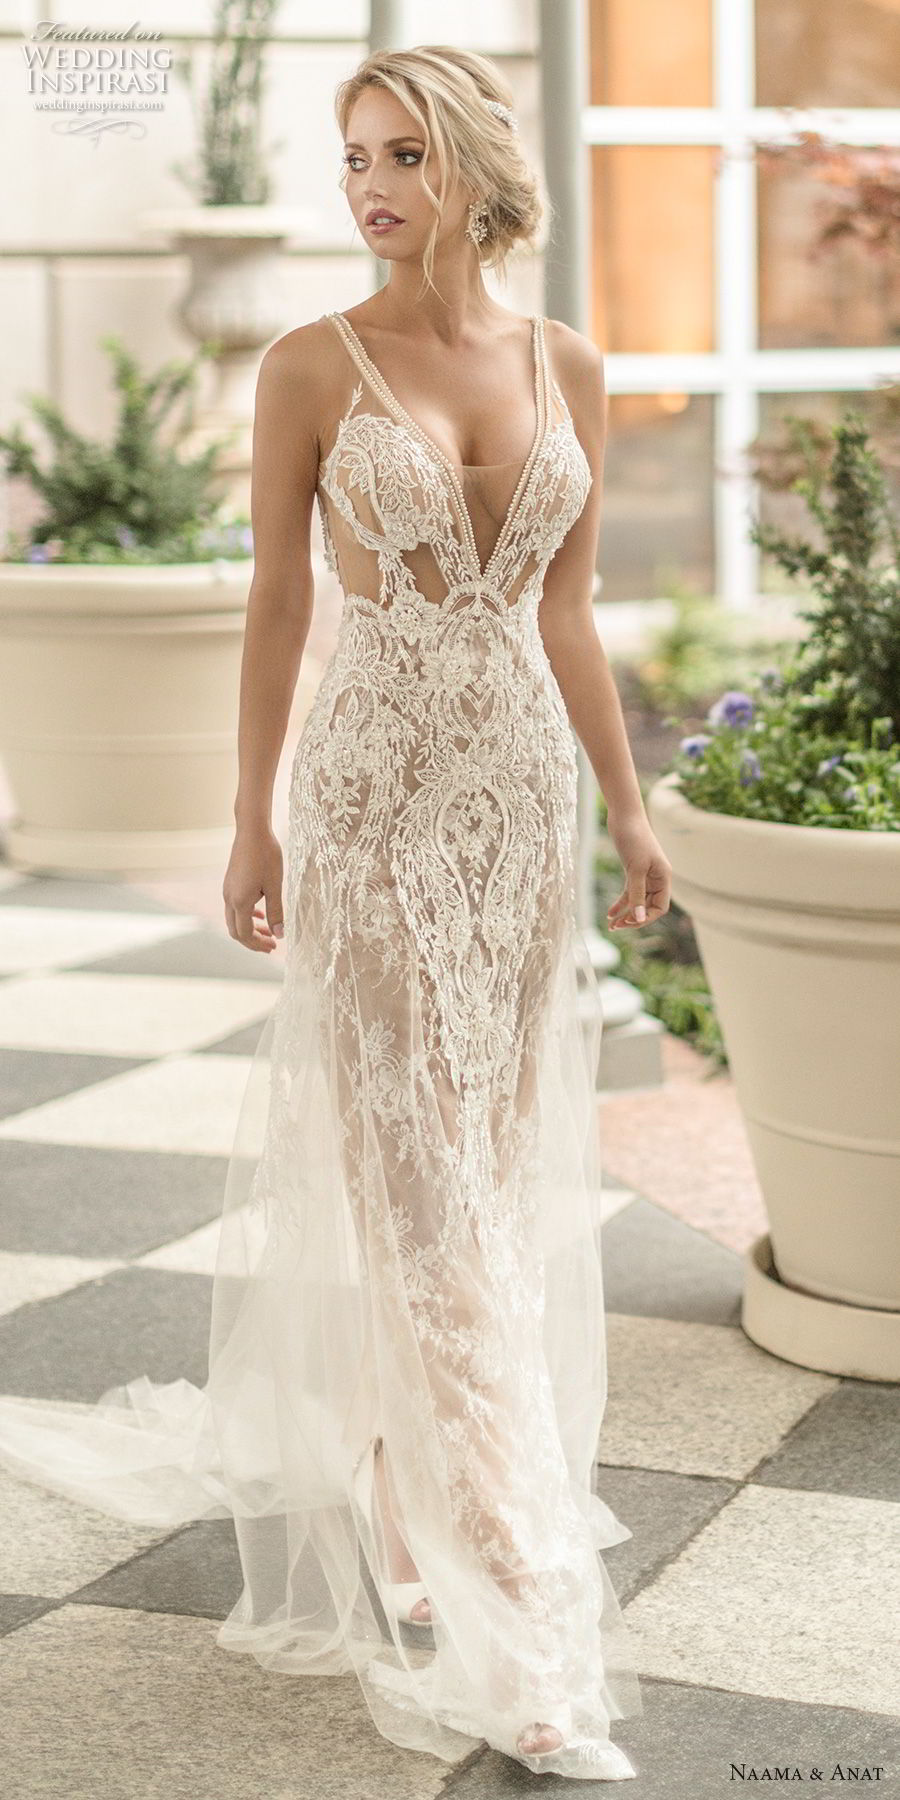 naama anat spring 2019 bridal sleeveless with strap deep v neck full embellishment sexy glamorous sheath wedding dress low open back chapel train (4) mv